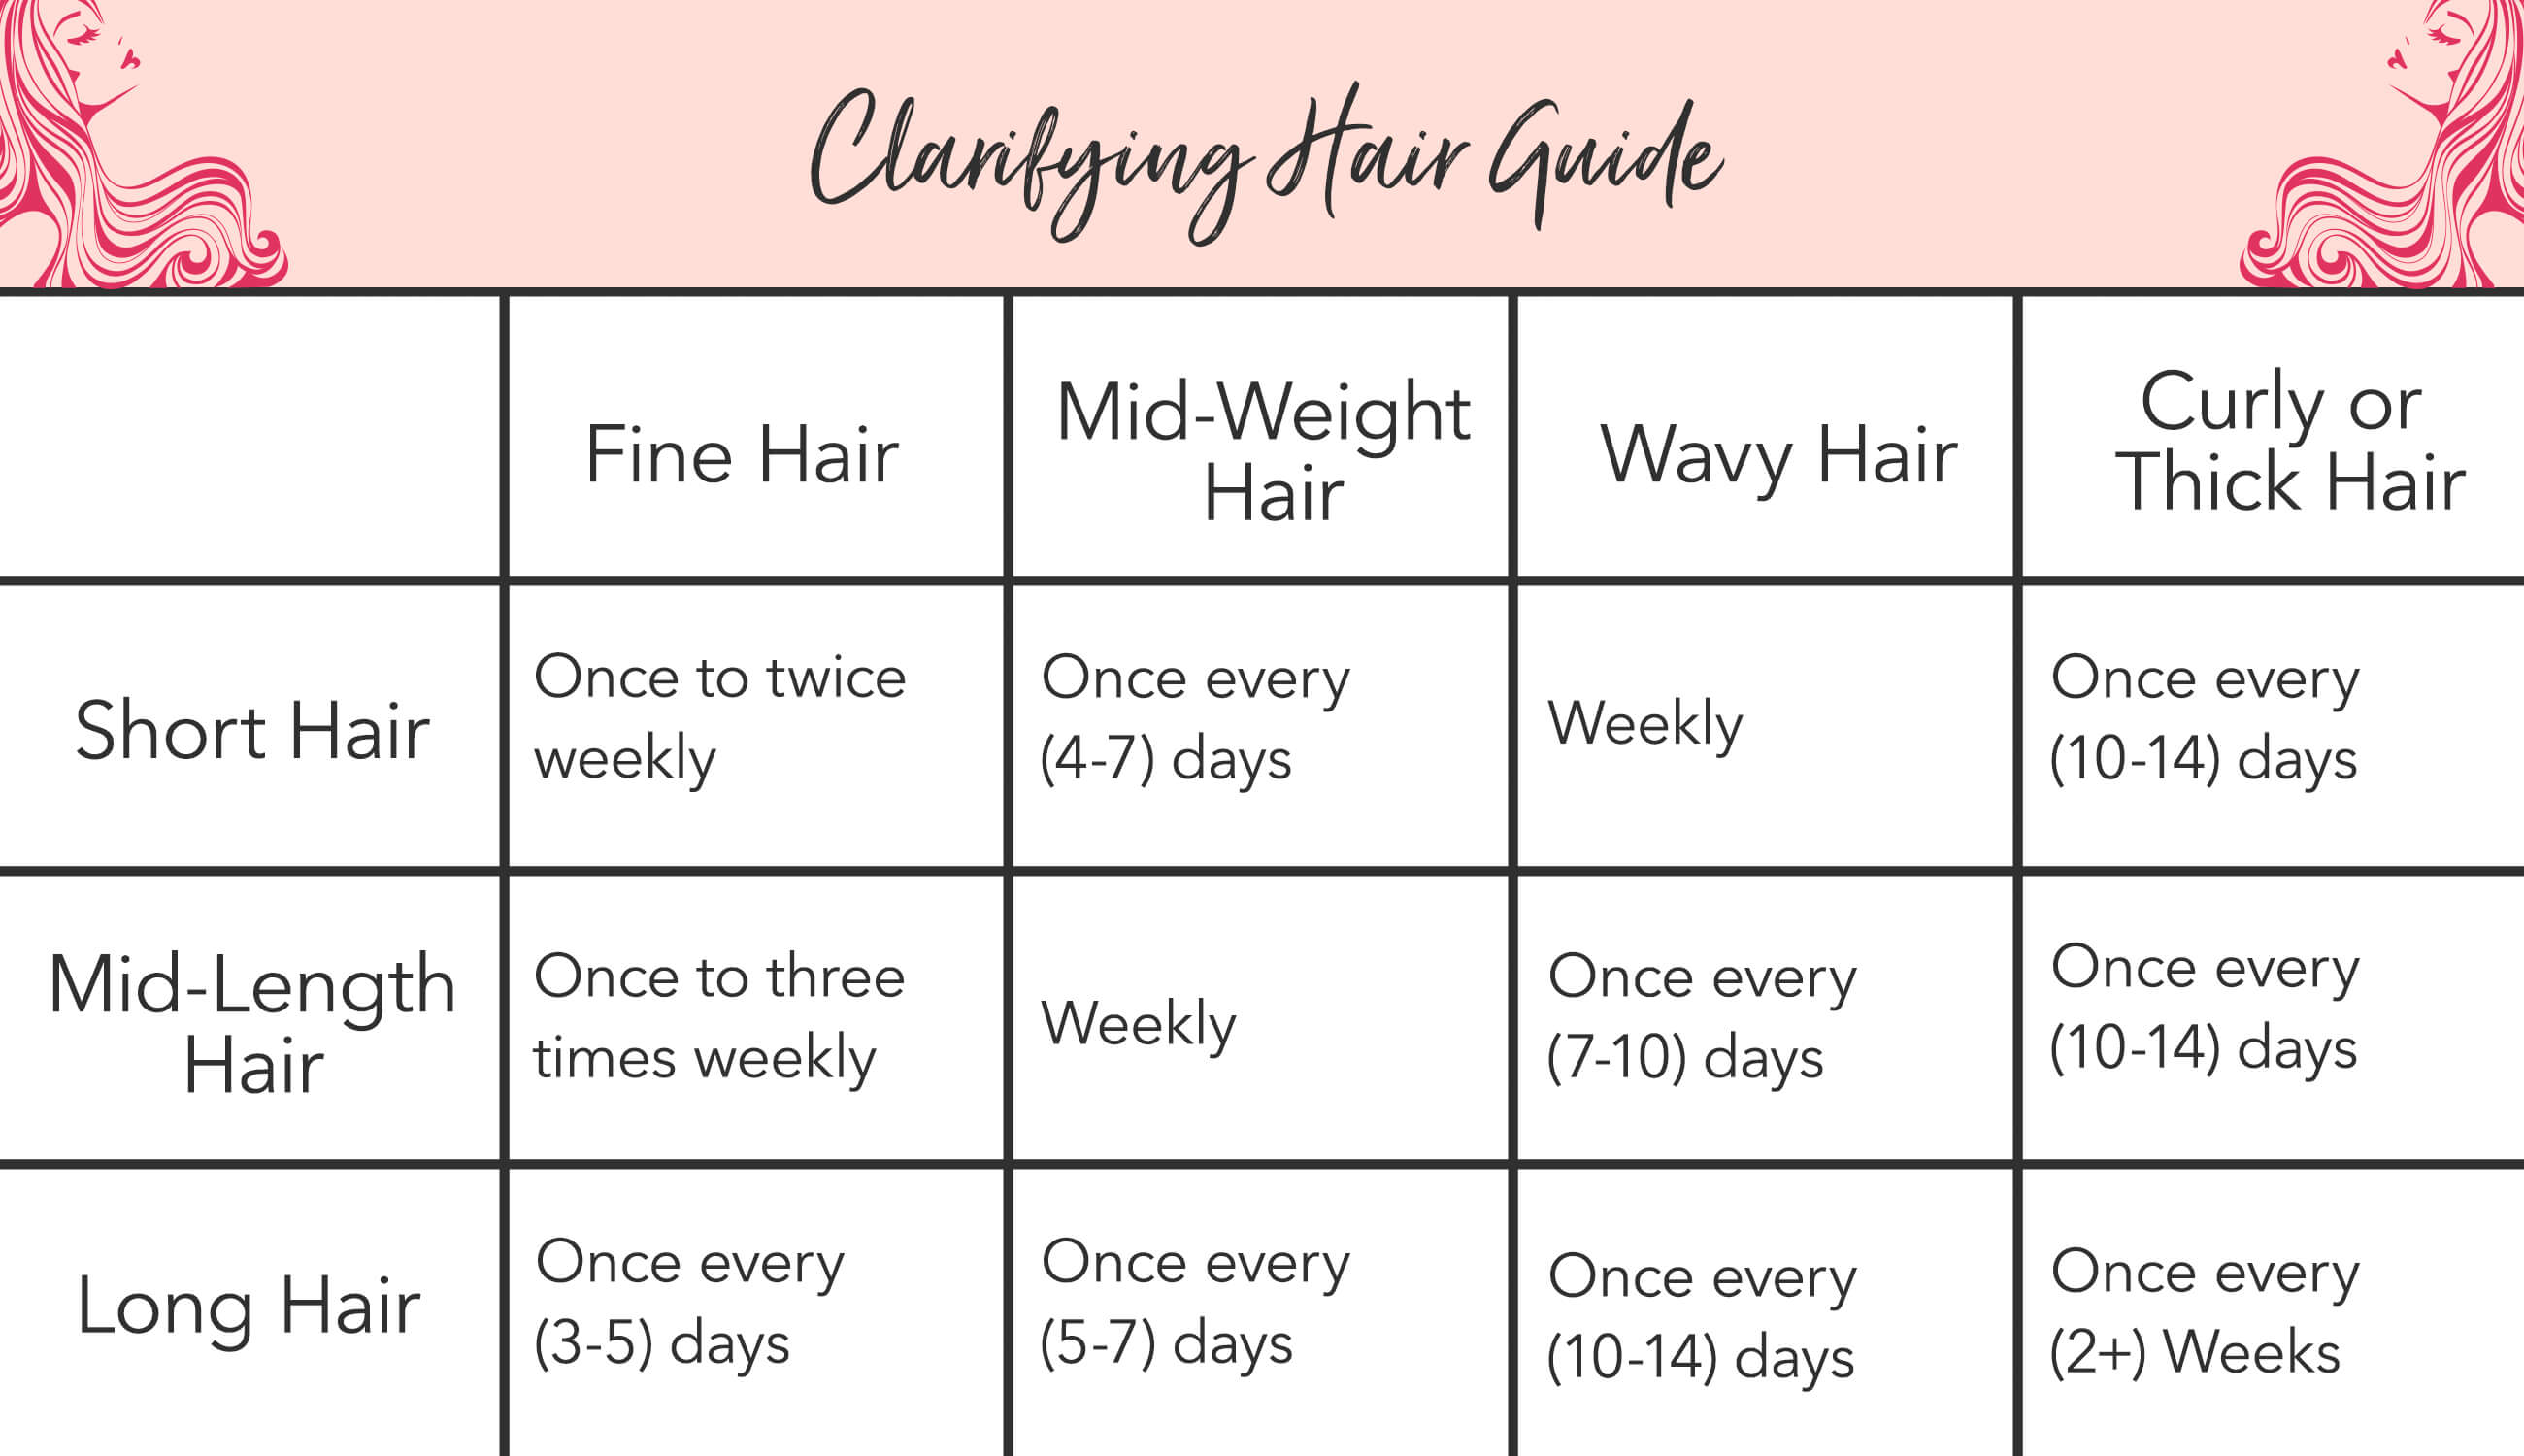 Clarifying Hair Guide